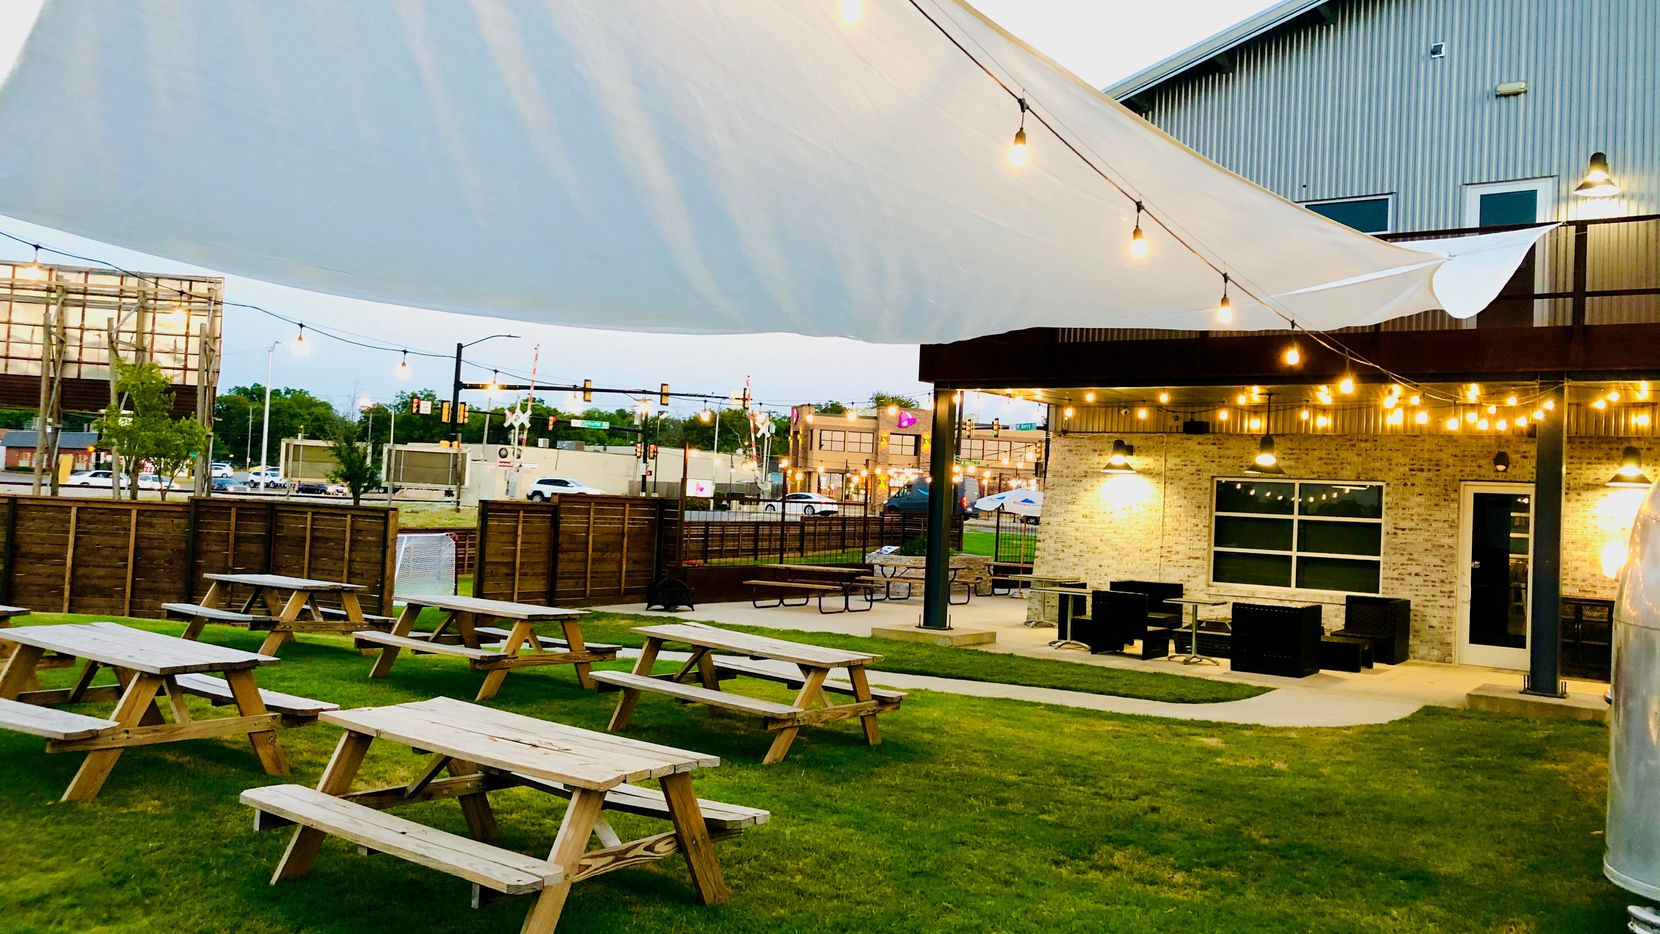 Berry Street Ice House in Fort Worth has picnic seating outdoors.